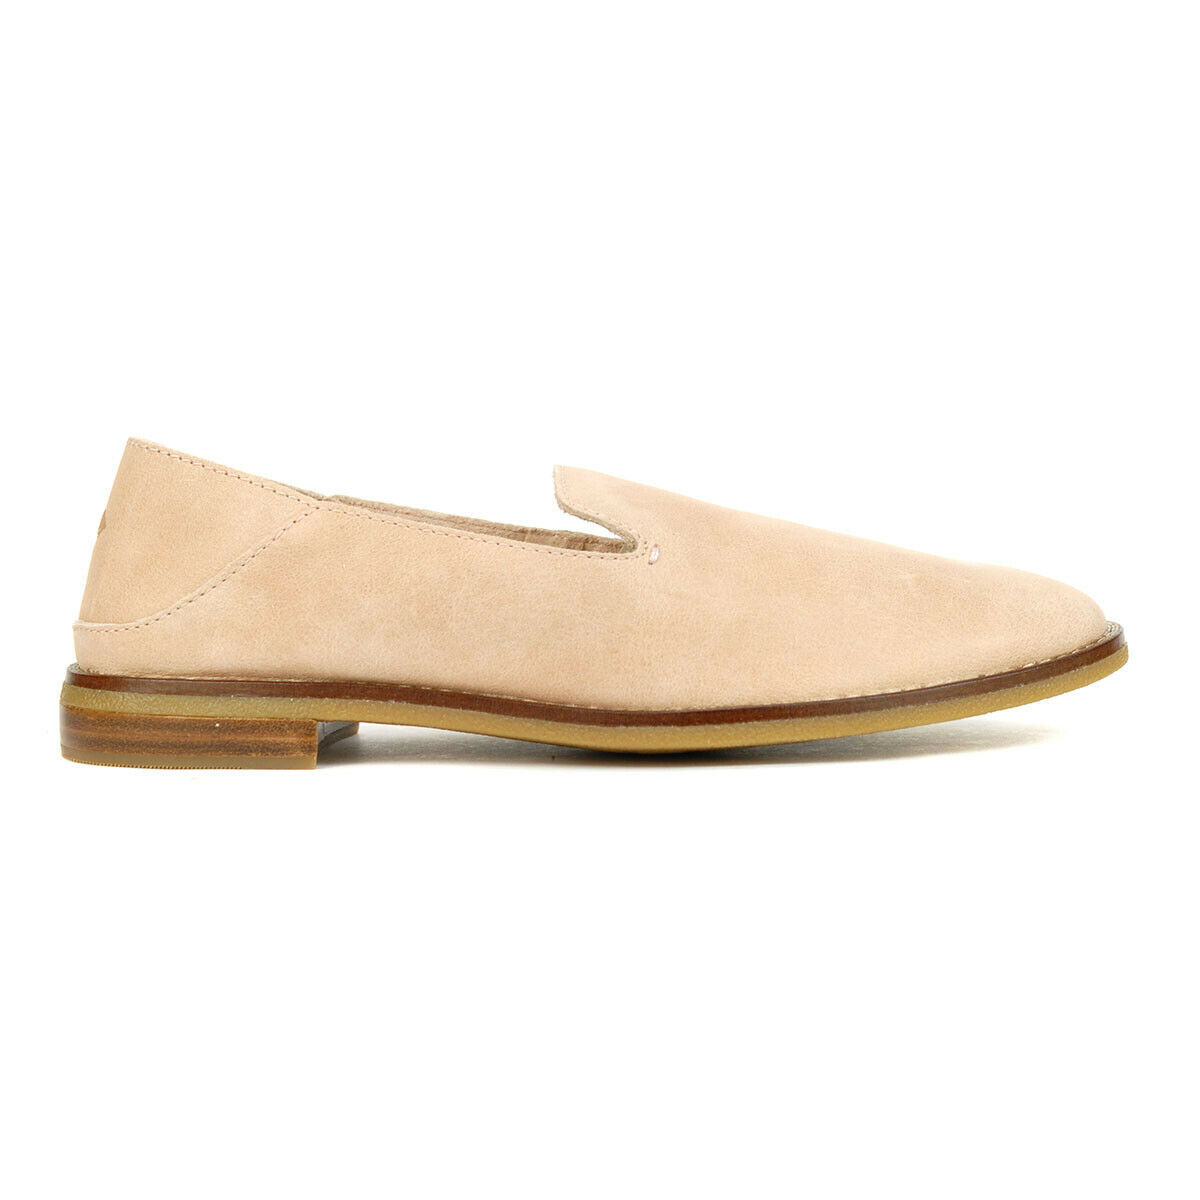 Sperry Top-Sider Women's Seaport Levy Smooth Leather Rose Dust Loafers STS846...